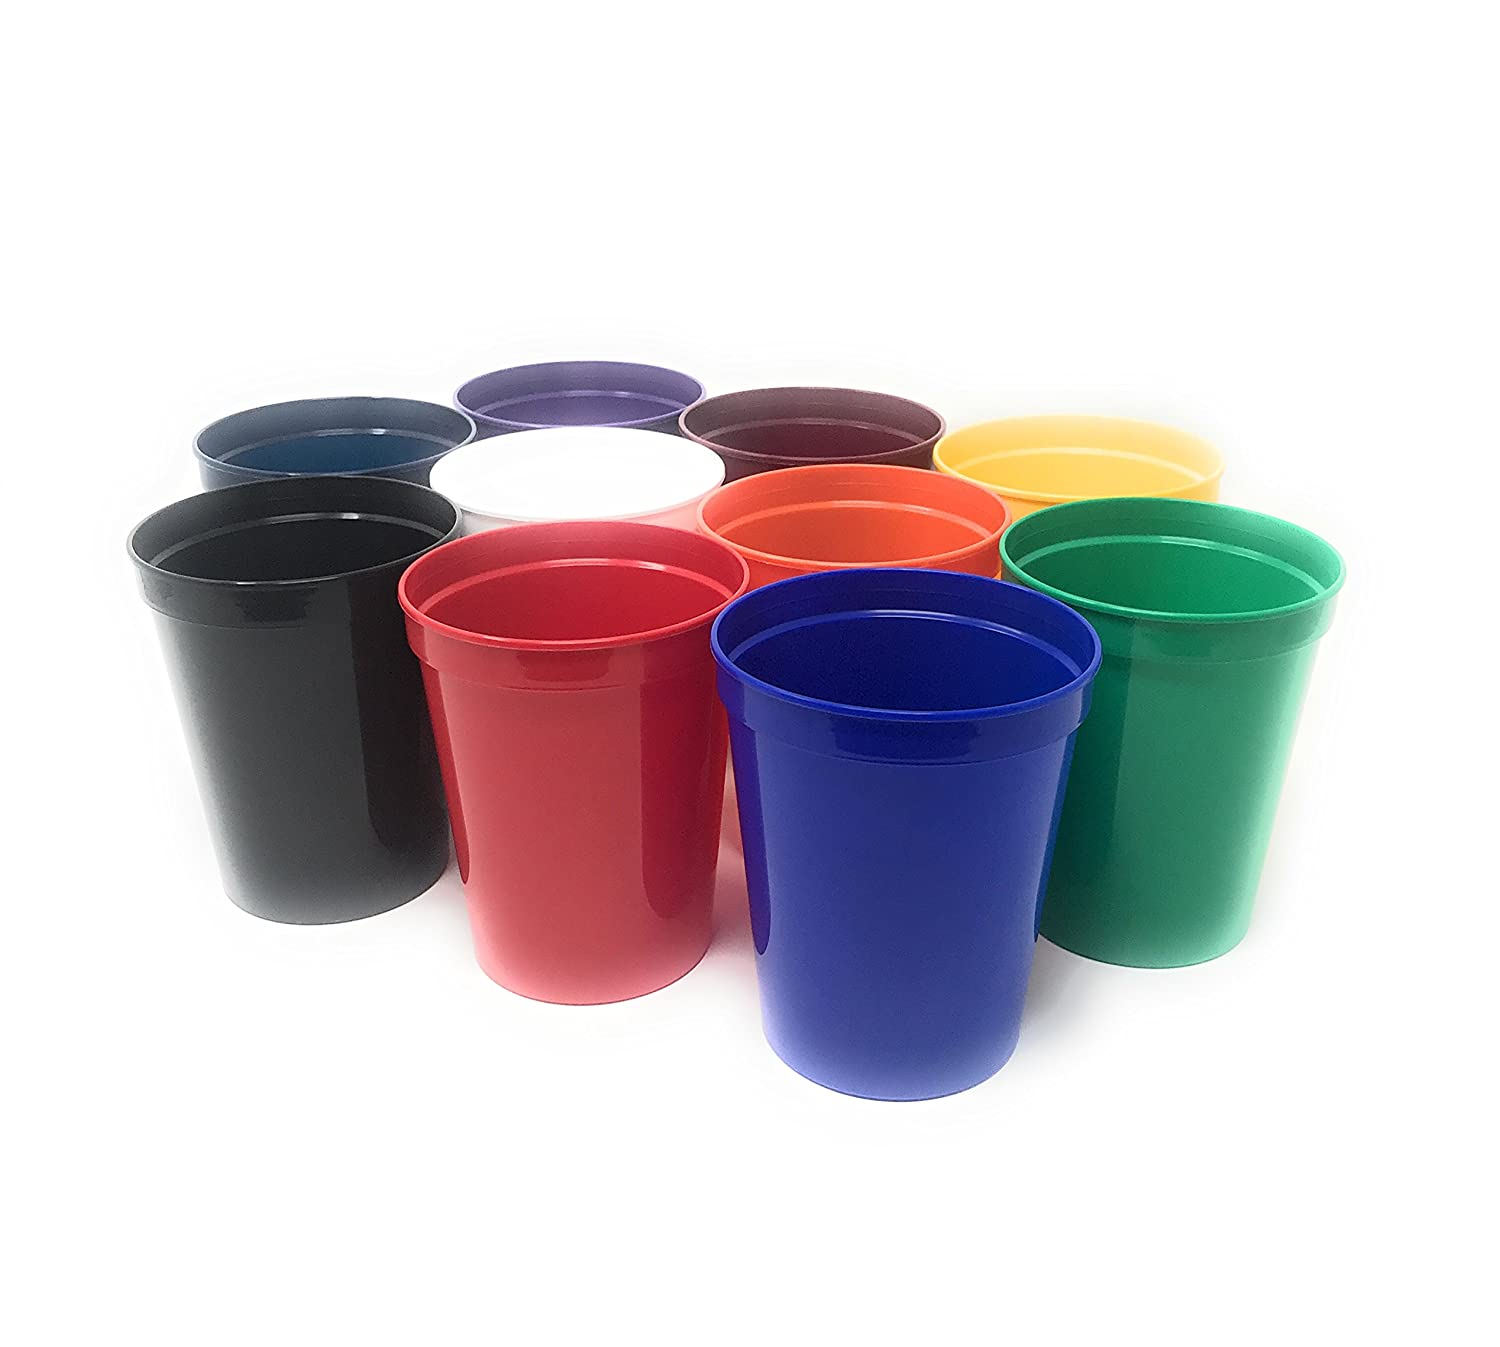 CSBD 10 Pack Blank 16 oz Plastic Stadium Cups Bulk Tumblers - Reusable or Disposable, Made In USA, Great For Customization, Monograms, Marketing, DIY Projects, Weddings, Parties, Events (10, Assorted)